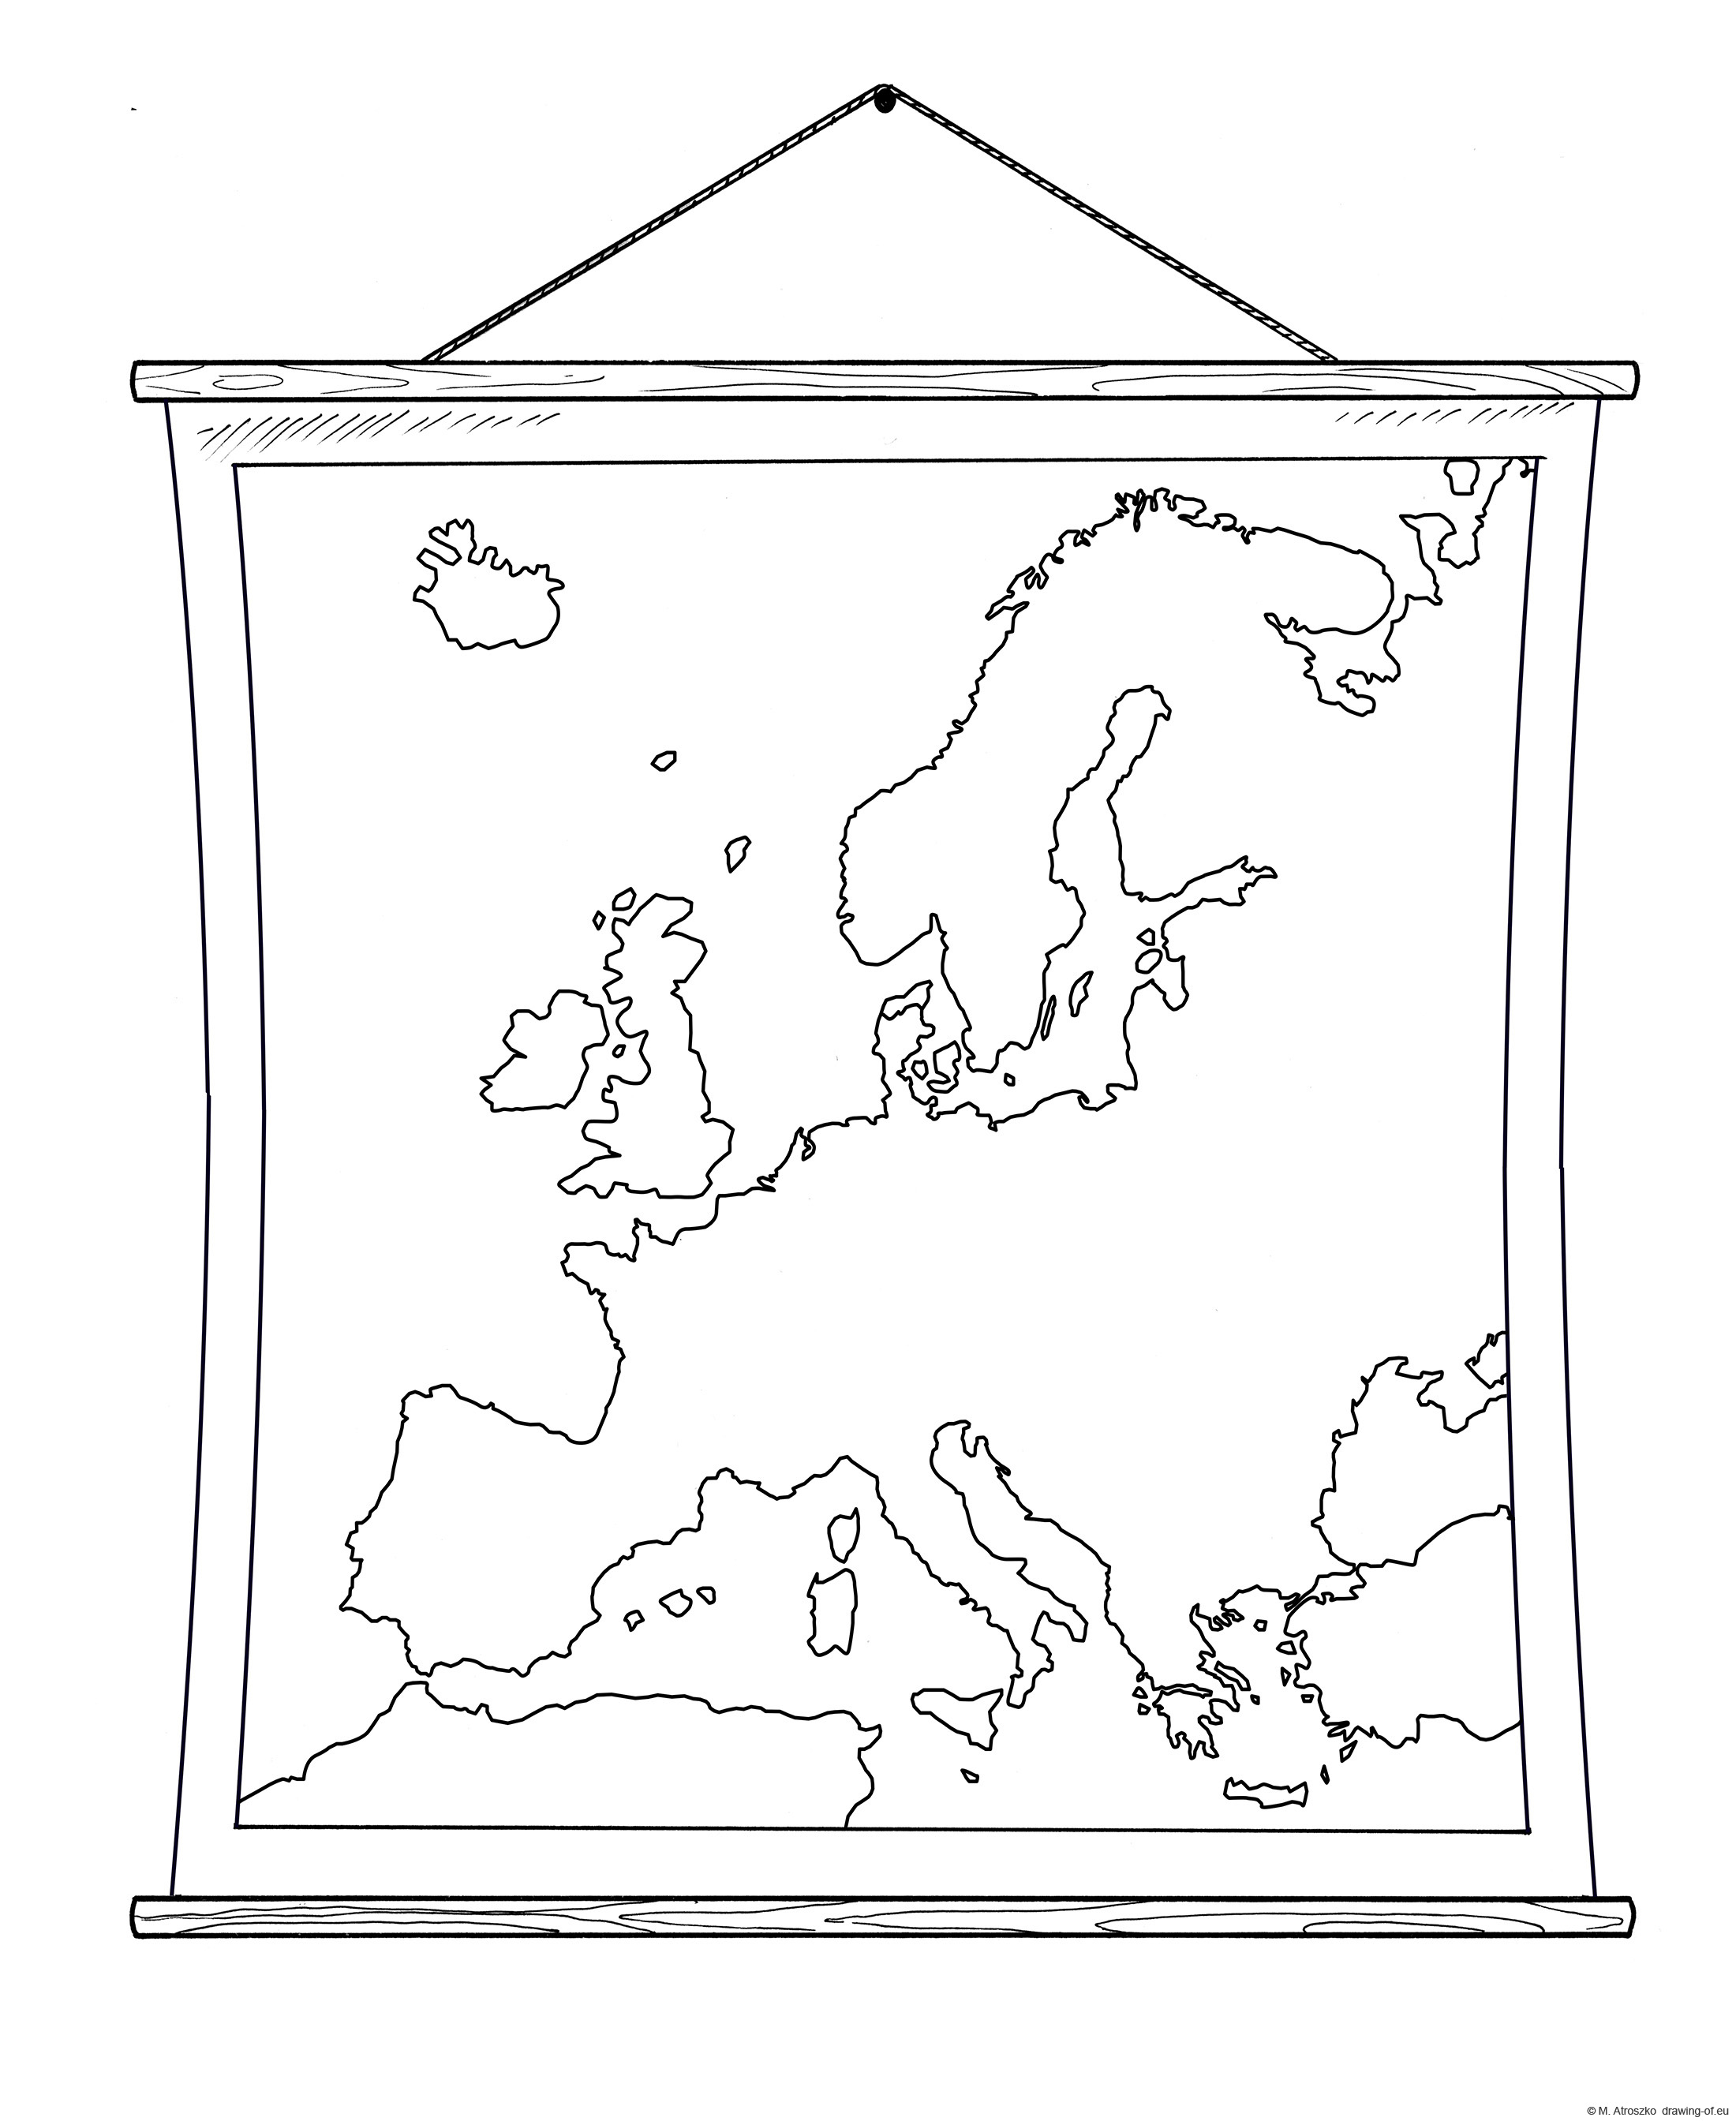 School wall map of Europe